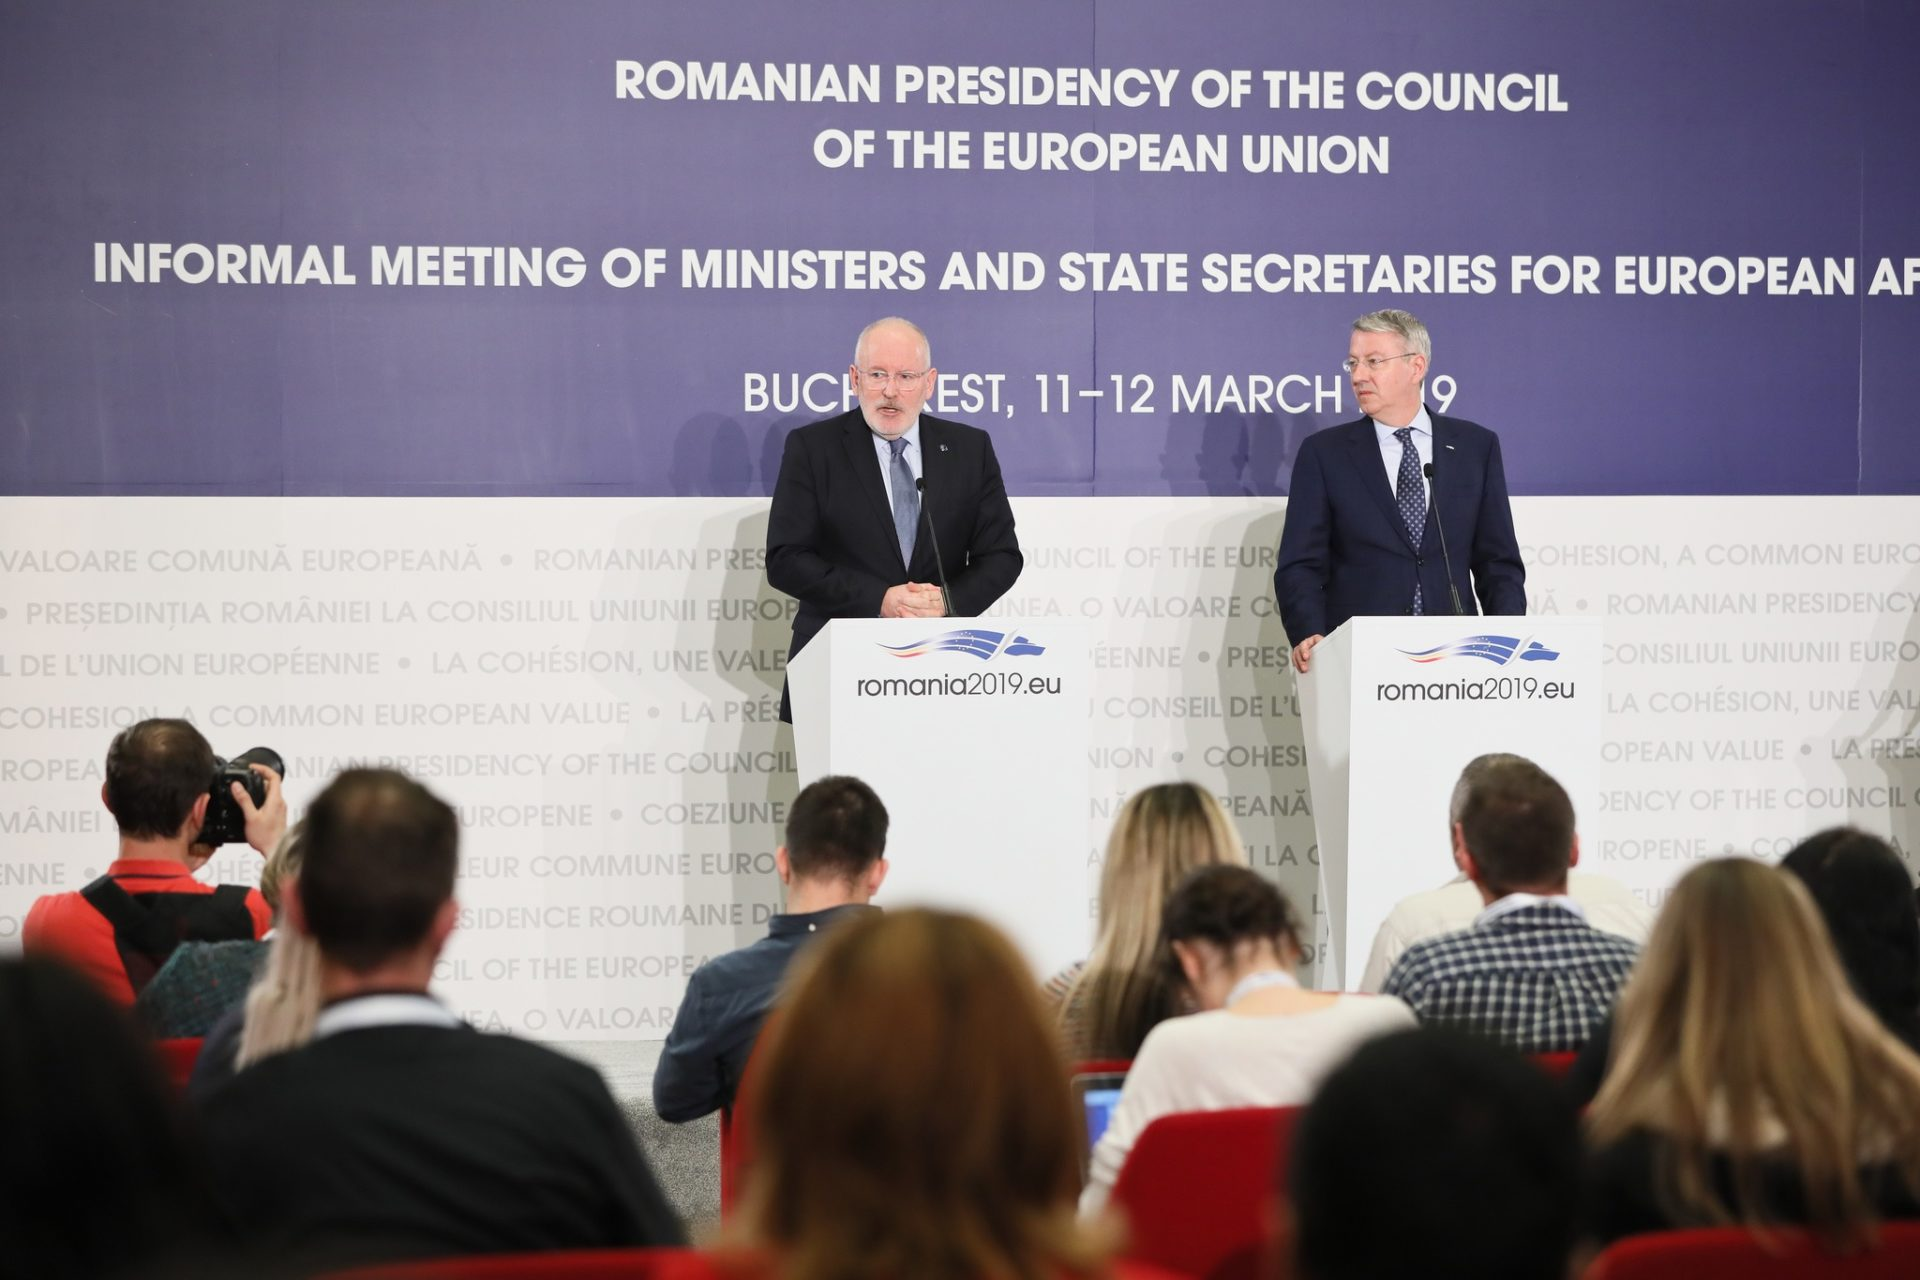 Informal Meeting of Ministers and State Secretaries for European Affairs, day two